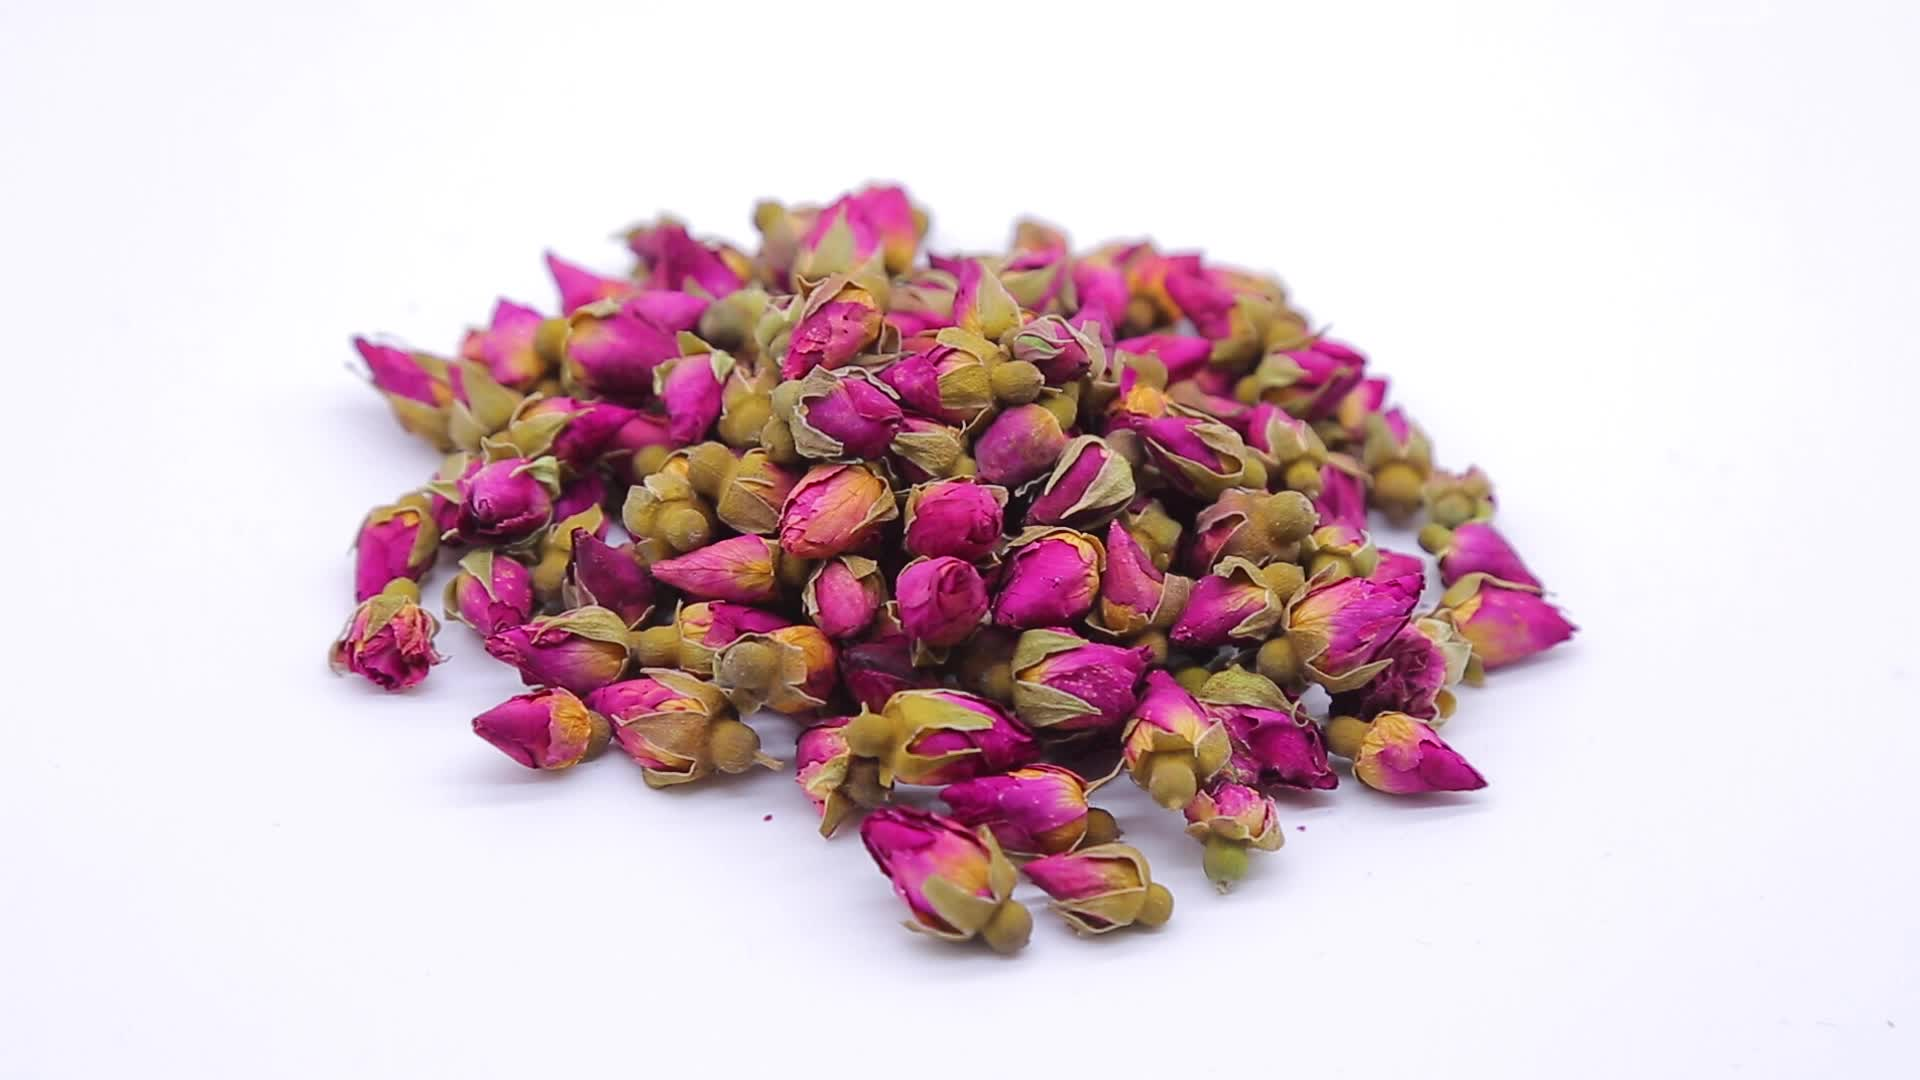 Buy Organic Dried Pink Flowers Dried Roses Small Rose Buds for Tea/kushui Rose Essence Flower Bud Herbal Tea Wholesale Supplie